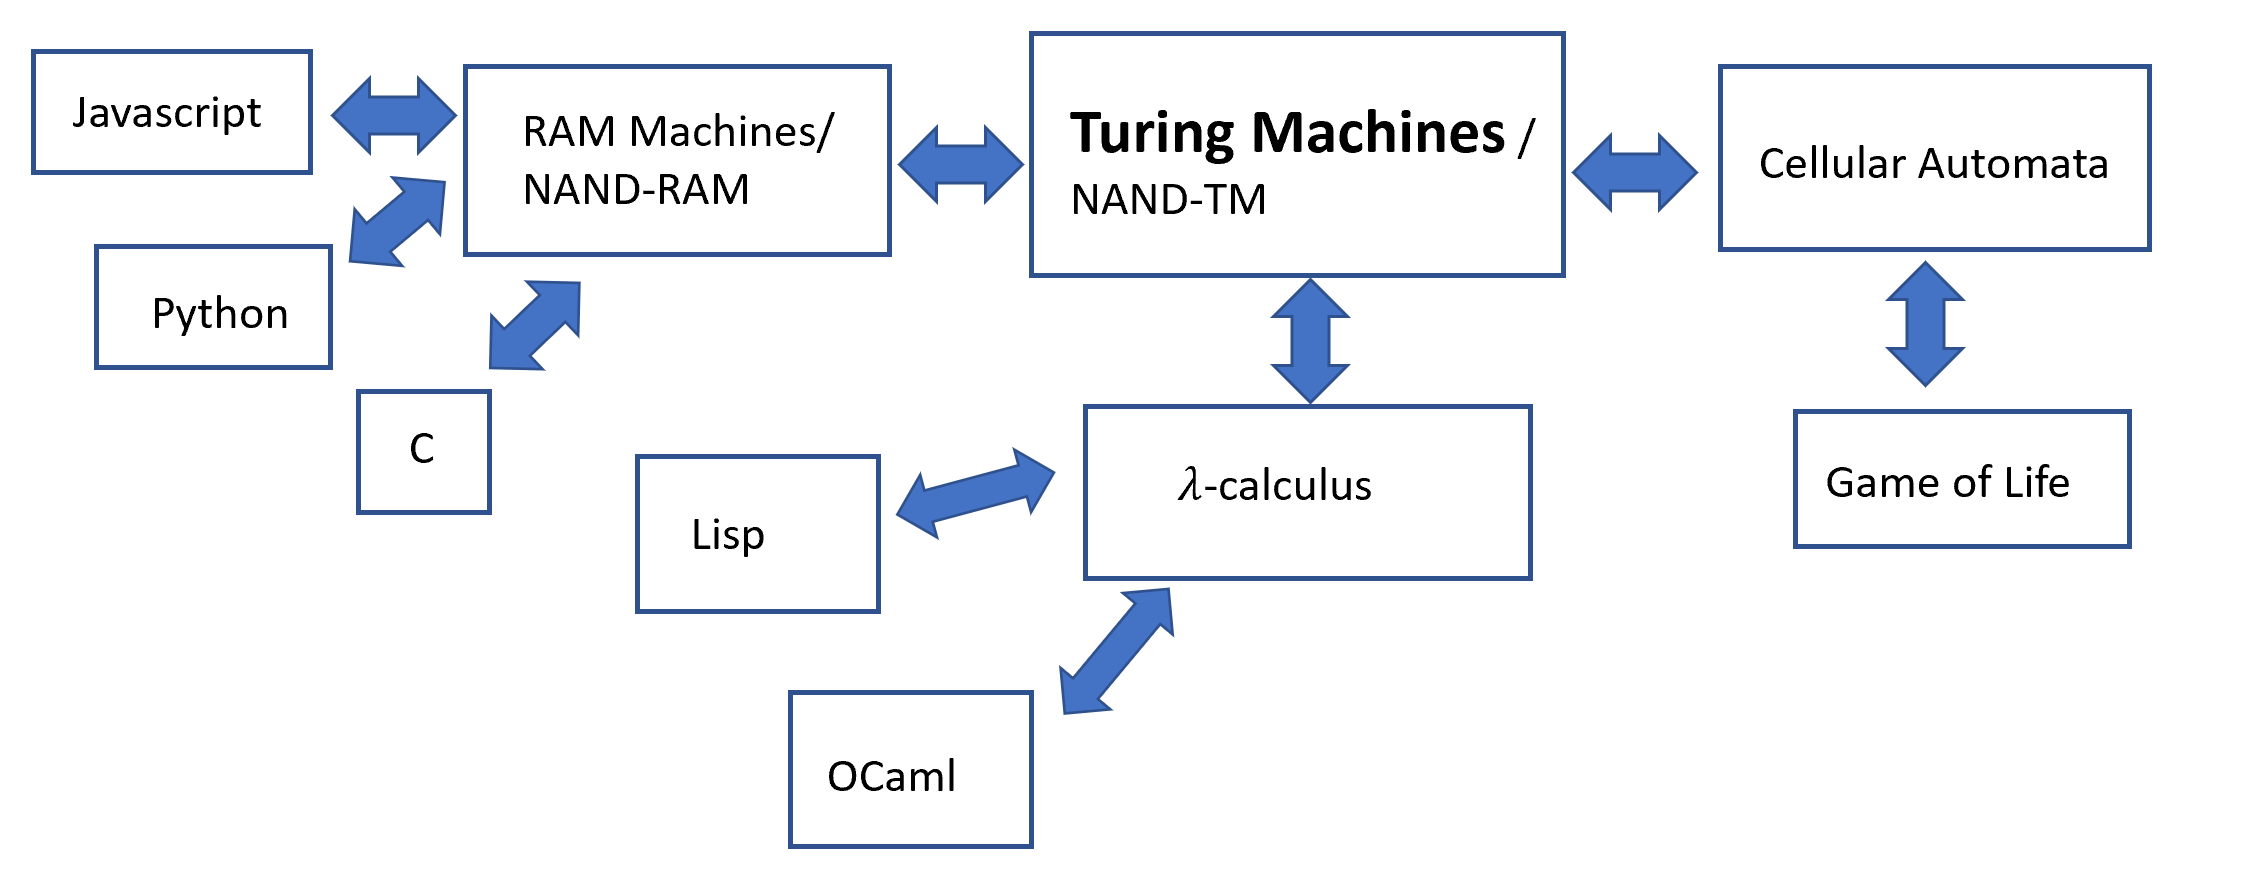 7.1: Some Turing-equivalent models. All of these are equivalent in power to Turing Machines (or equivalently NAND-TM programs) in the sense that they can compute exactly the same class of functions. All of these are models for computing infinite functions that take inputs of unbounded length. In contrast, Boolean circuits / NAND-CIRC programs can only compute finite functions and hence are not Turing complete.